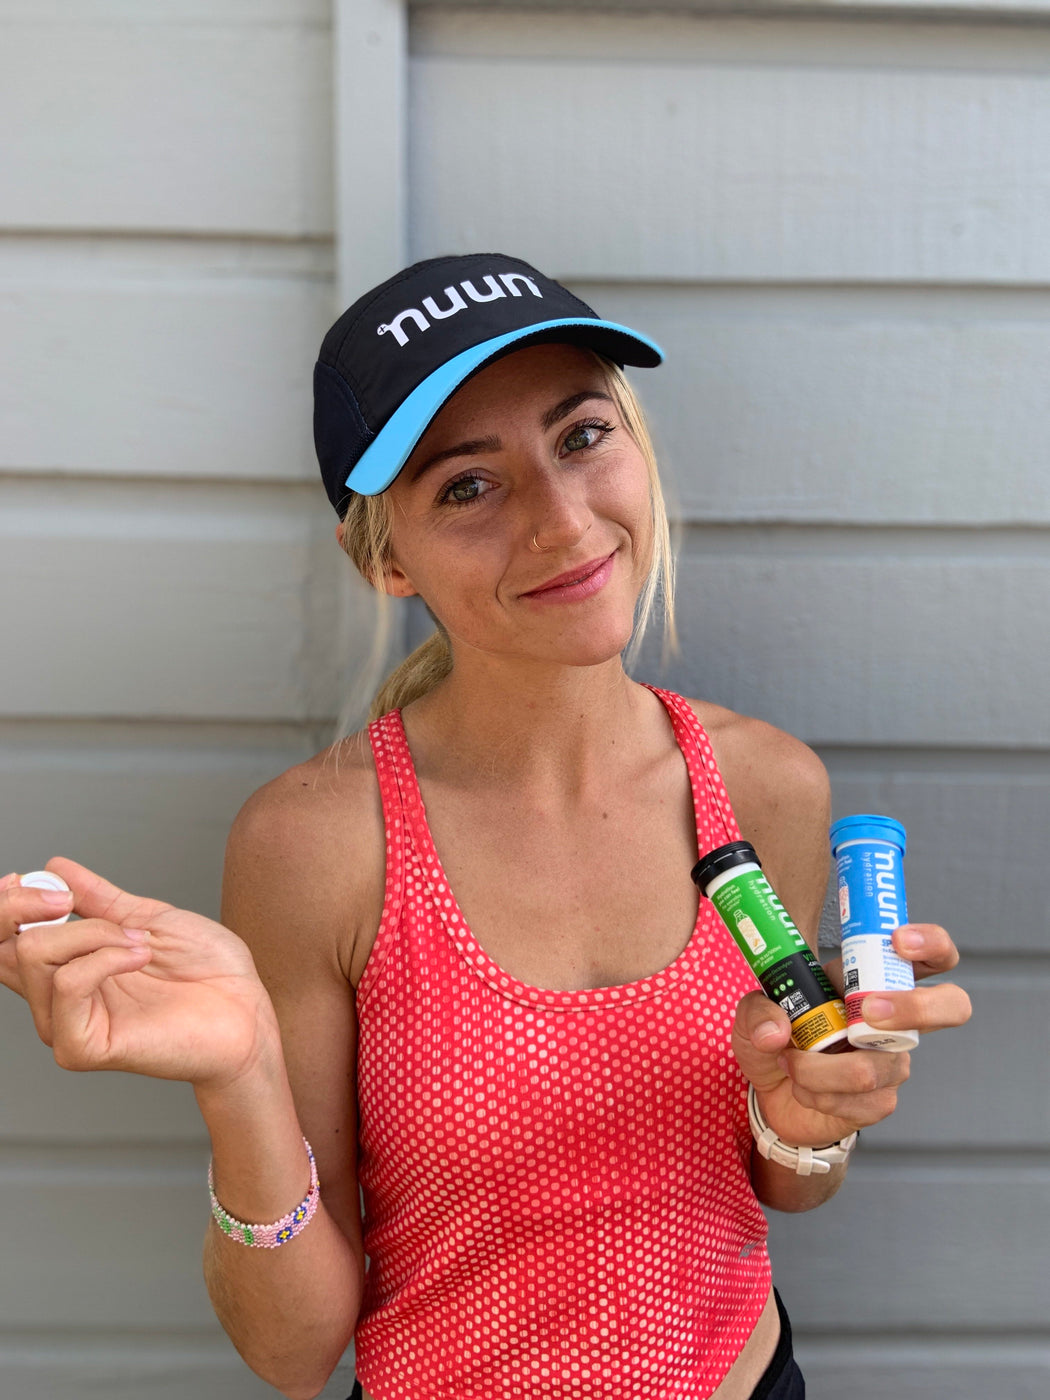 Grayson Murphy with nuun tubes in her hands